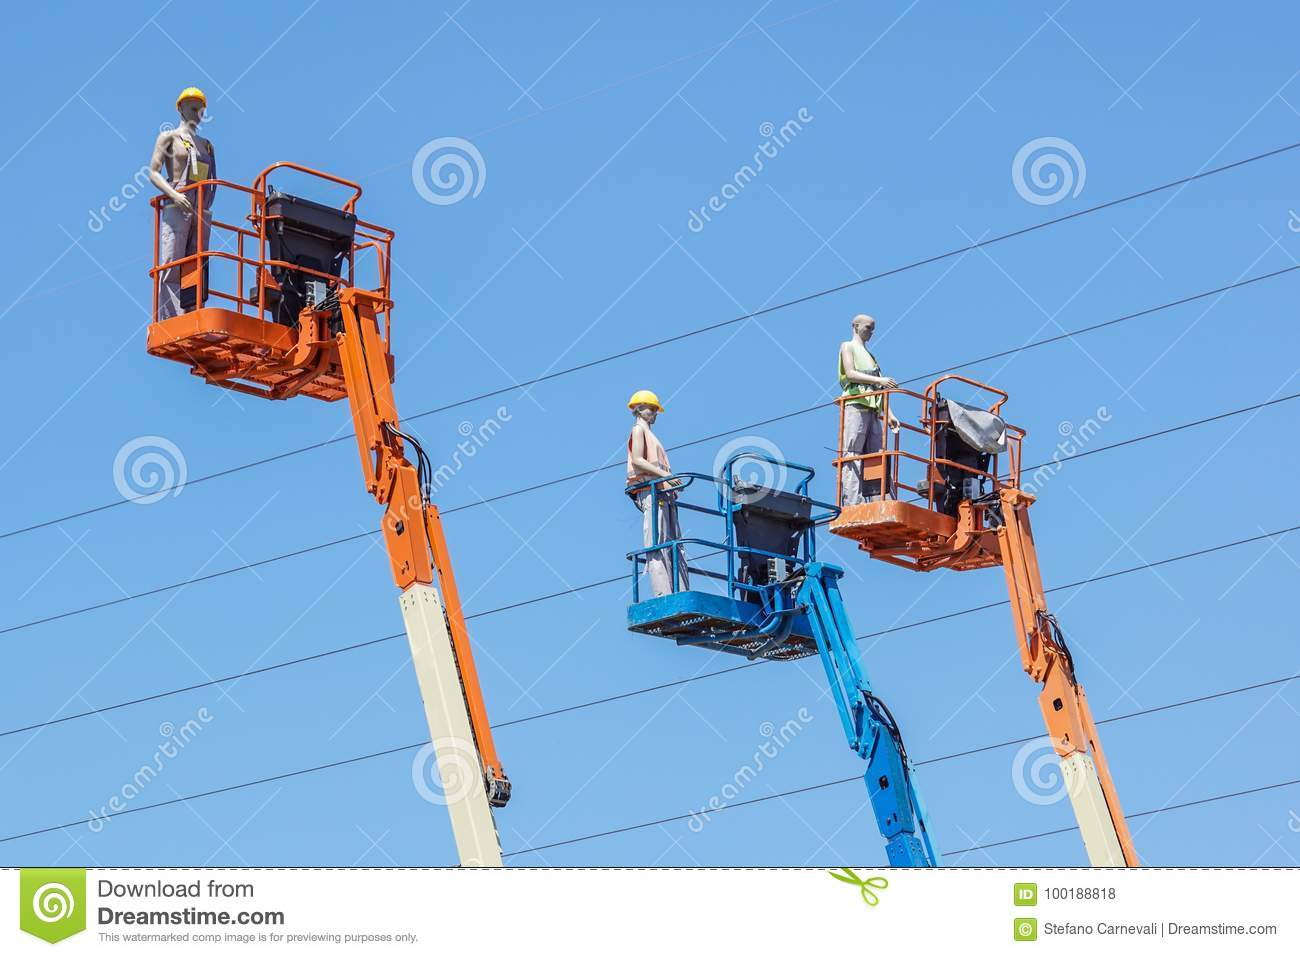 Hydraulic Mobile Construction Platform Elevated Towards A